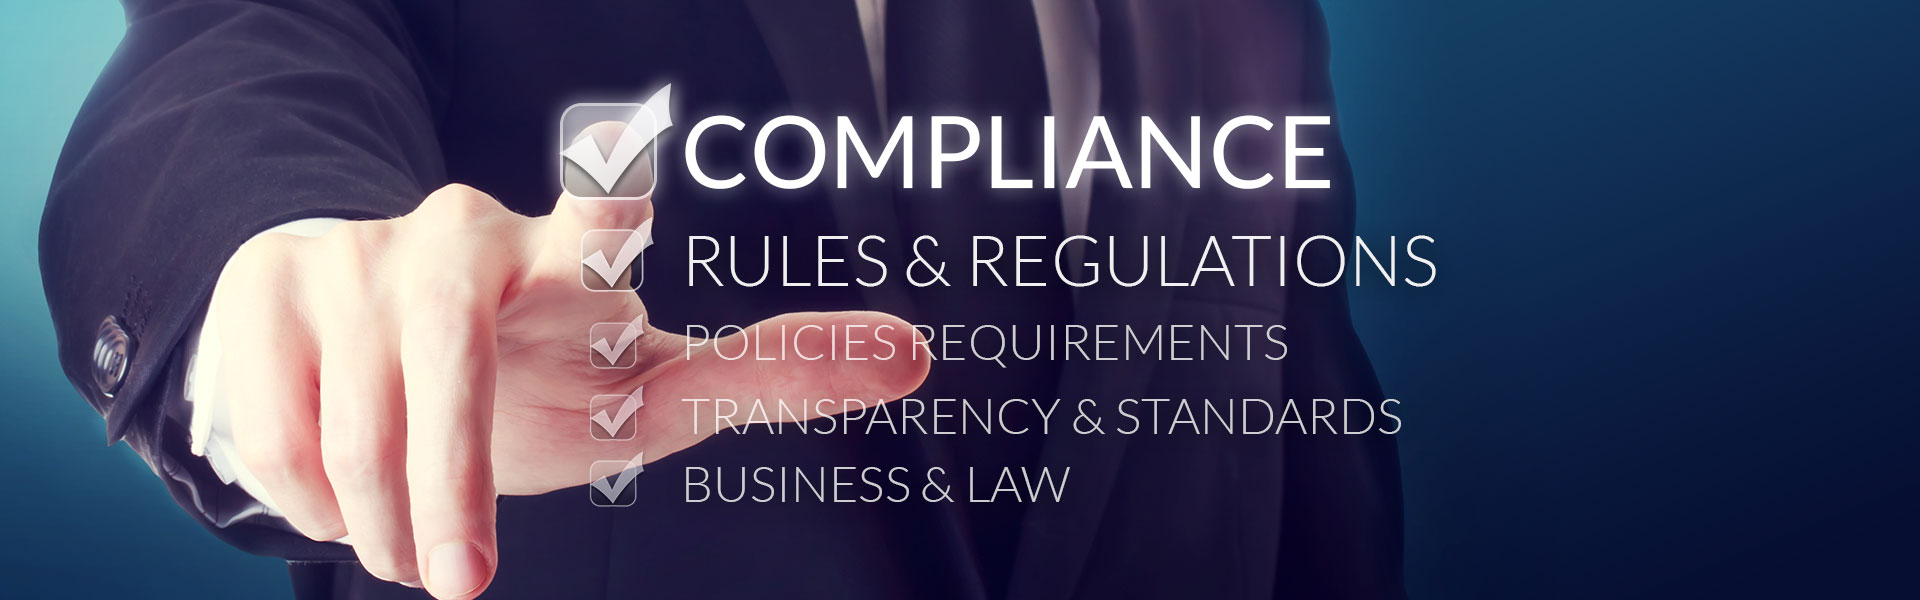 Compliance team dolarex - Qualifications for compliance officer ...